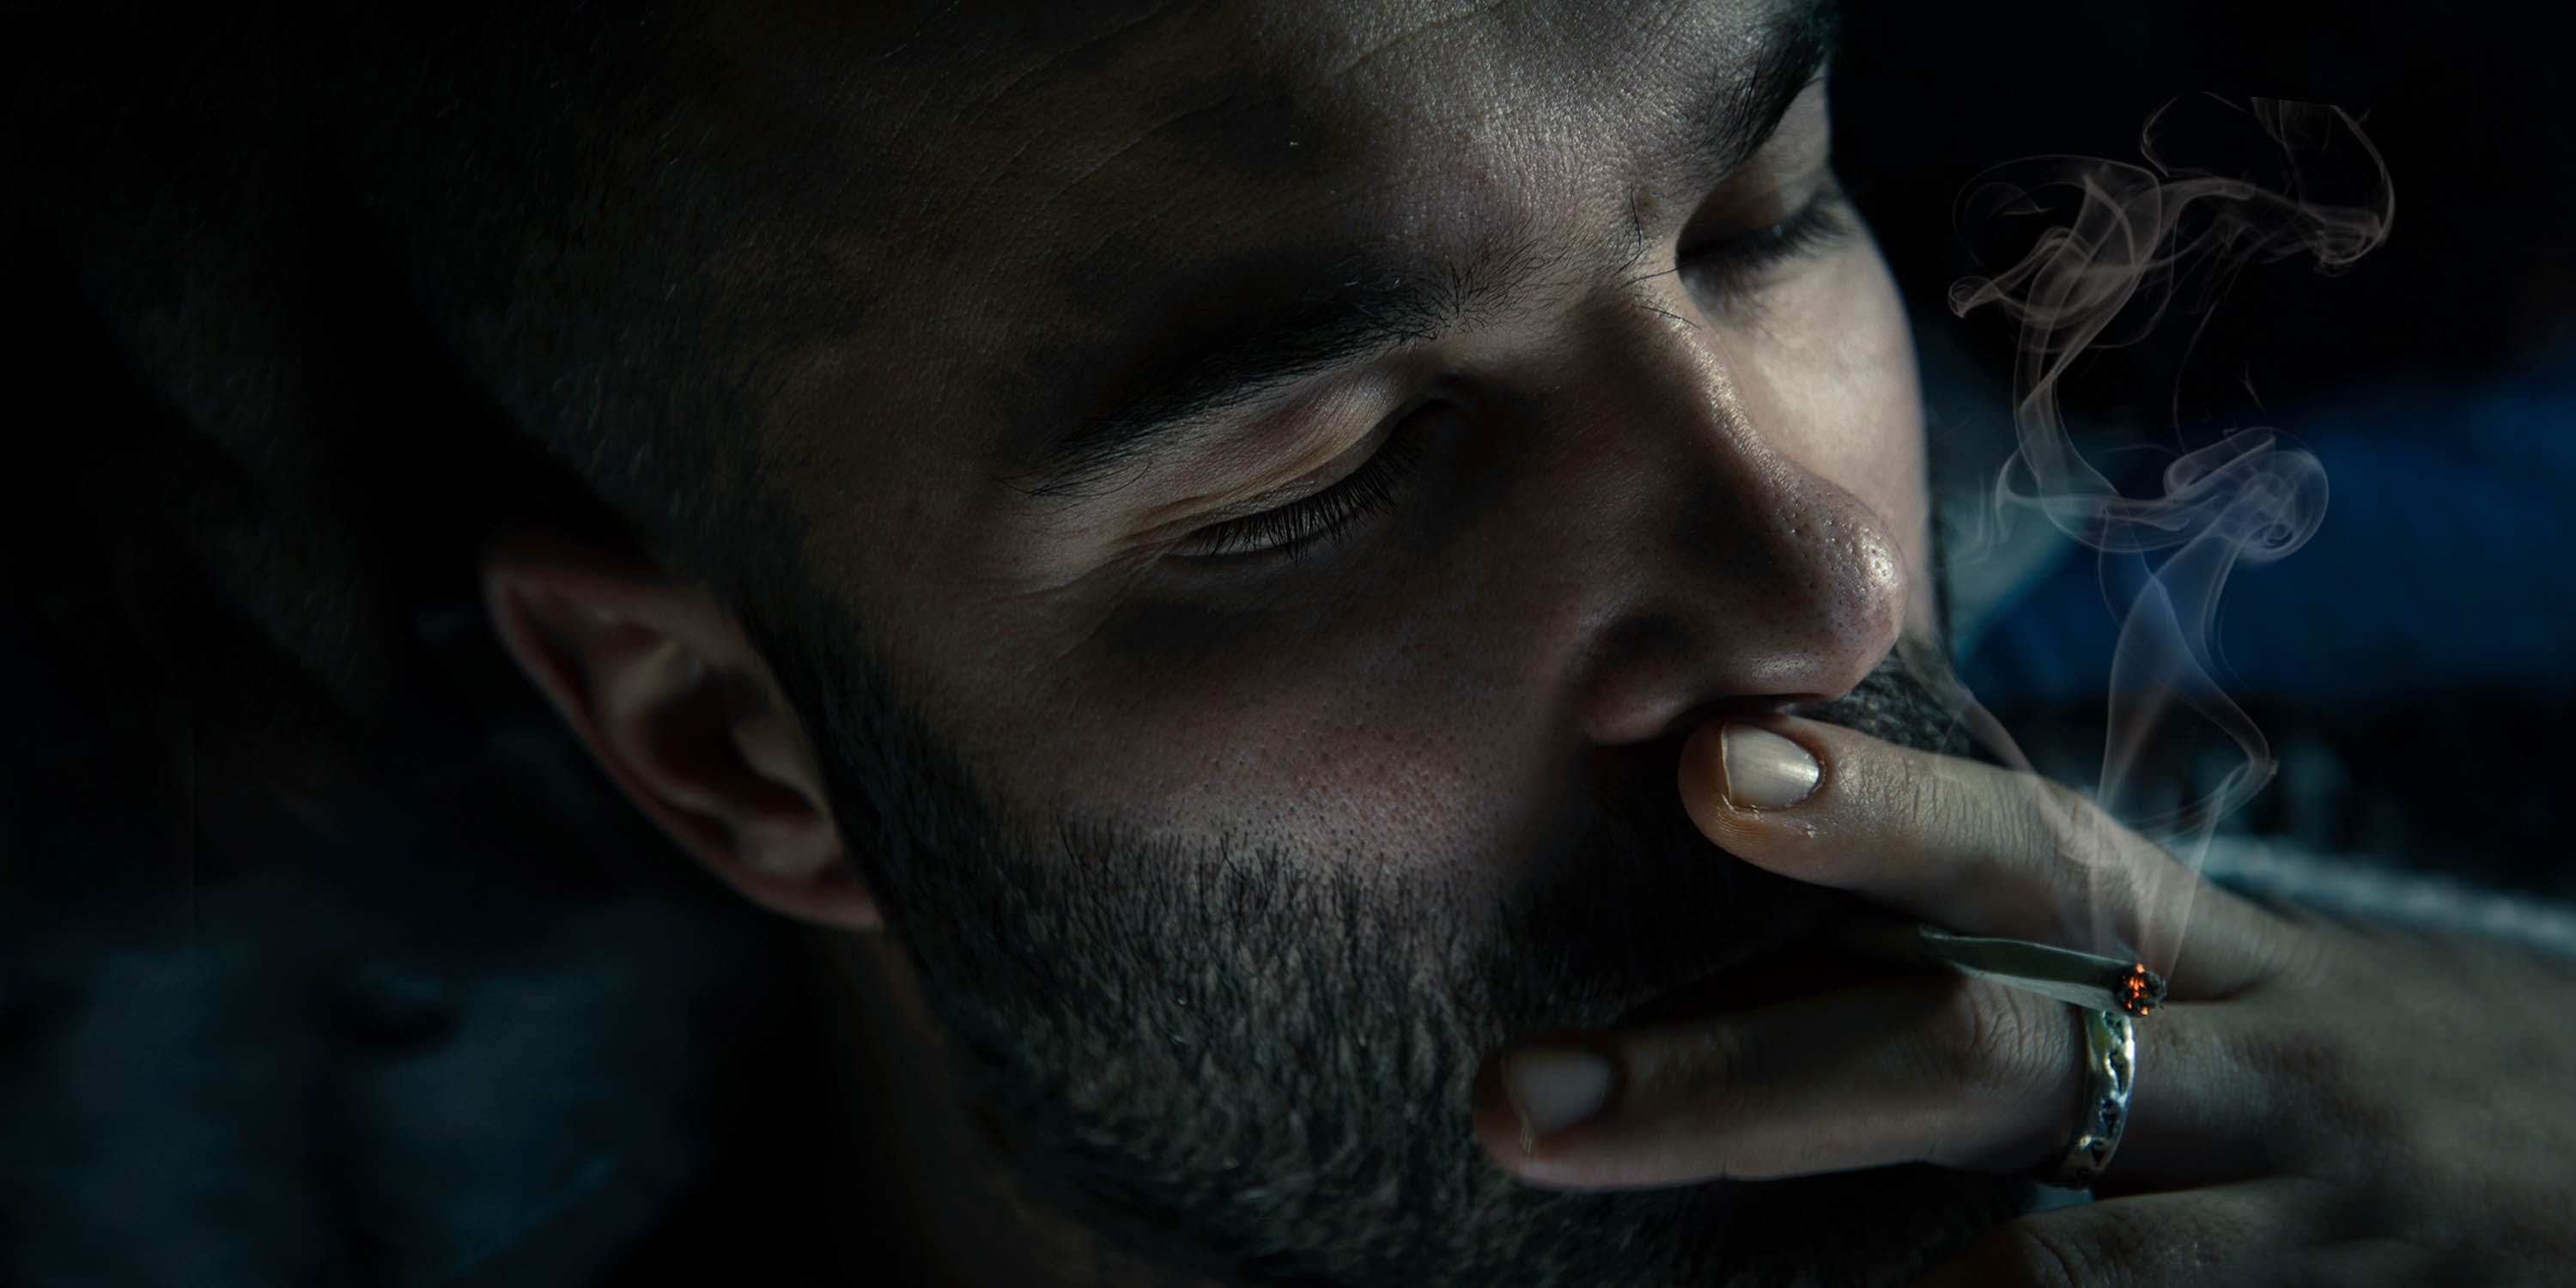 Close-up photo of mid-adult man smoking cigarette in the dark. He appears deep in thought, likely pondering one of life's many philosophical questions.